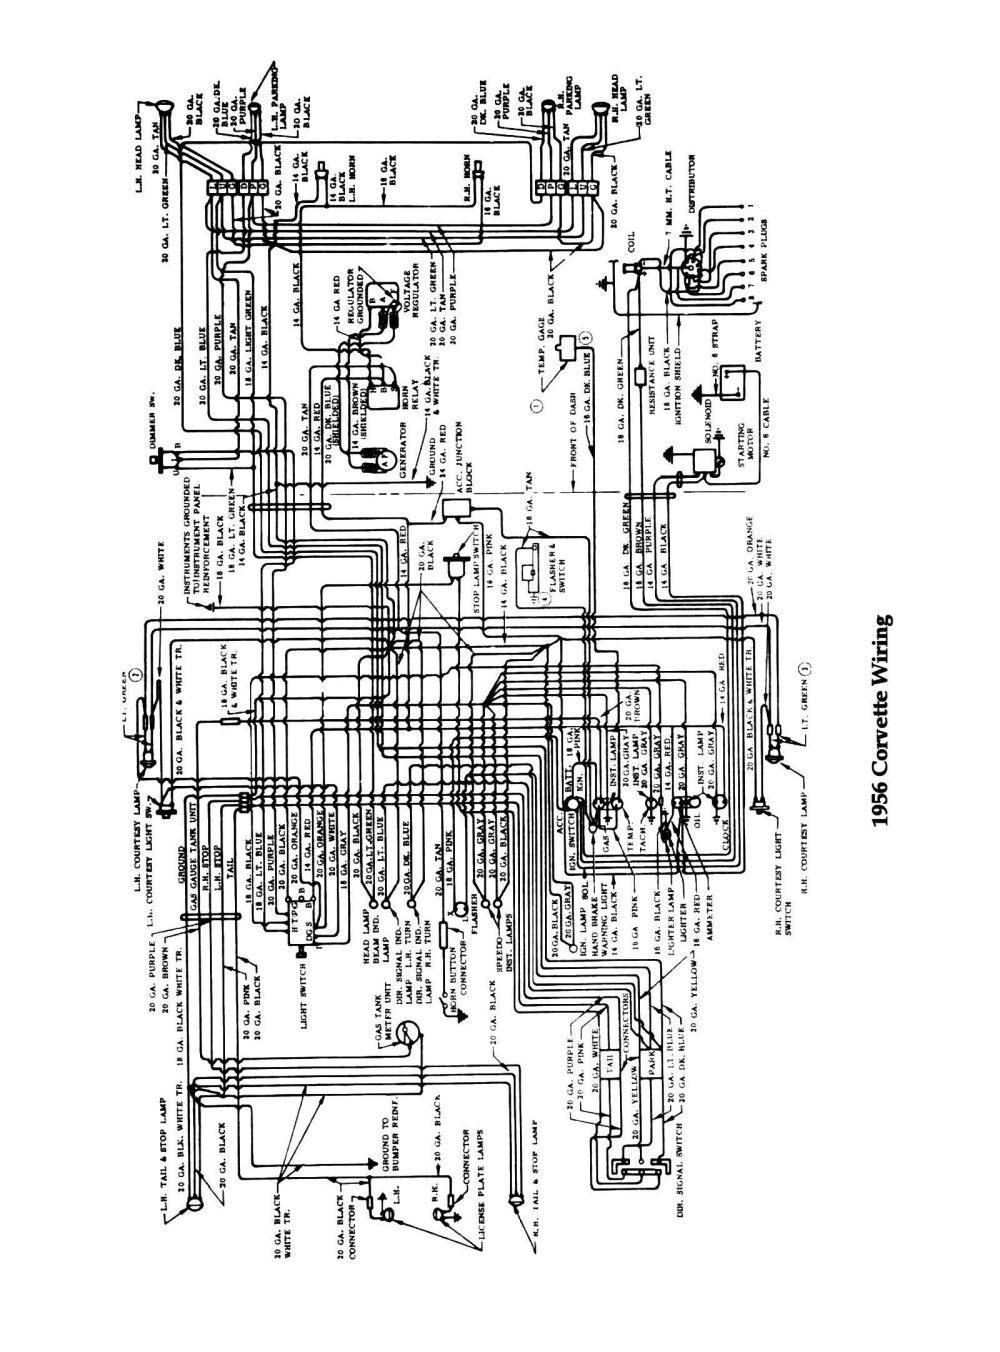 medium resolution of 1960 corvette wiring diagram wiring diagrams schema chevrolet 1979 corvette fuse diagram 1960 corvette wiring diagram